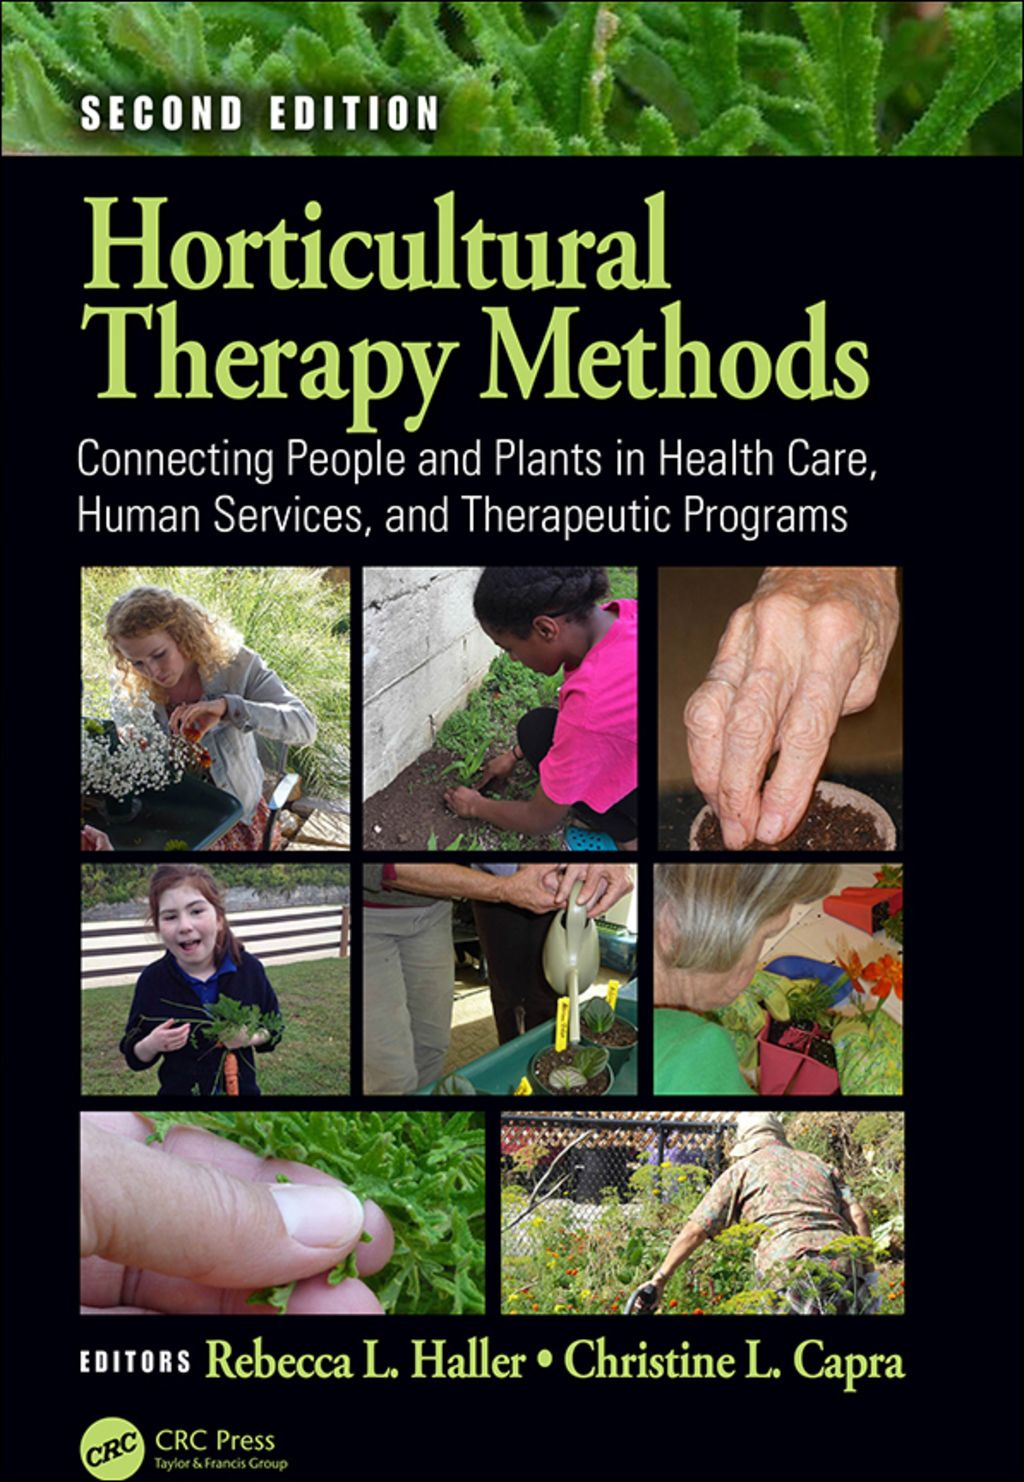 Horticultural therapy methods ebook rental in 2020